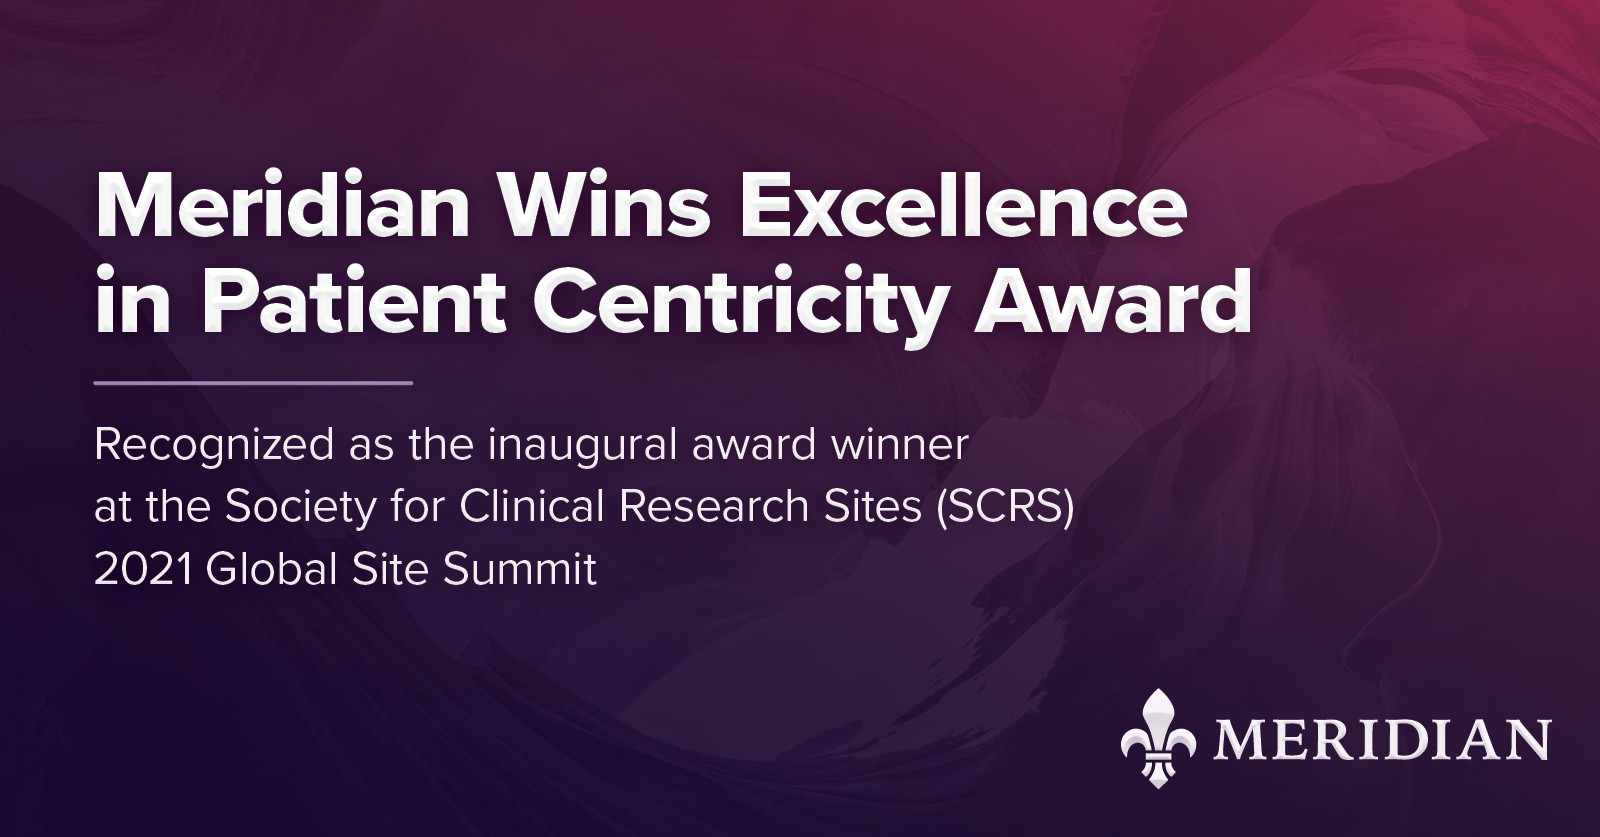 Meridian Wins Excellence in Patient Centricity Award